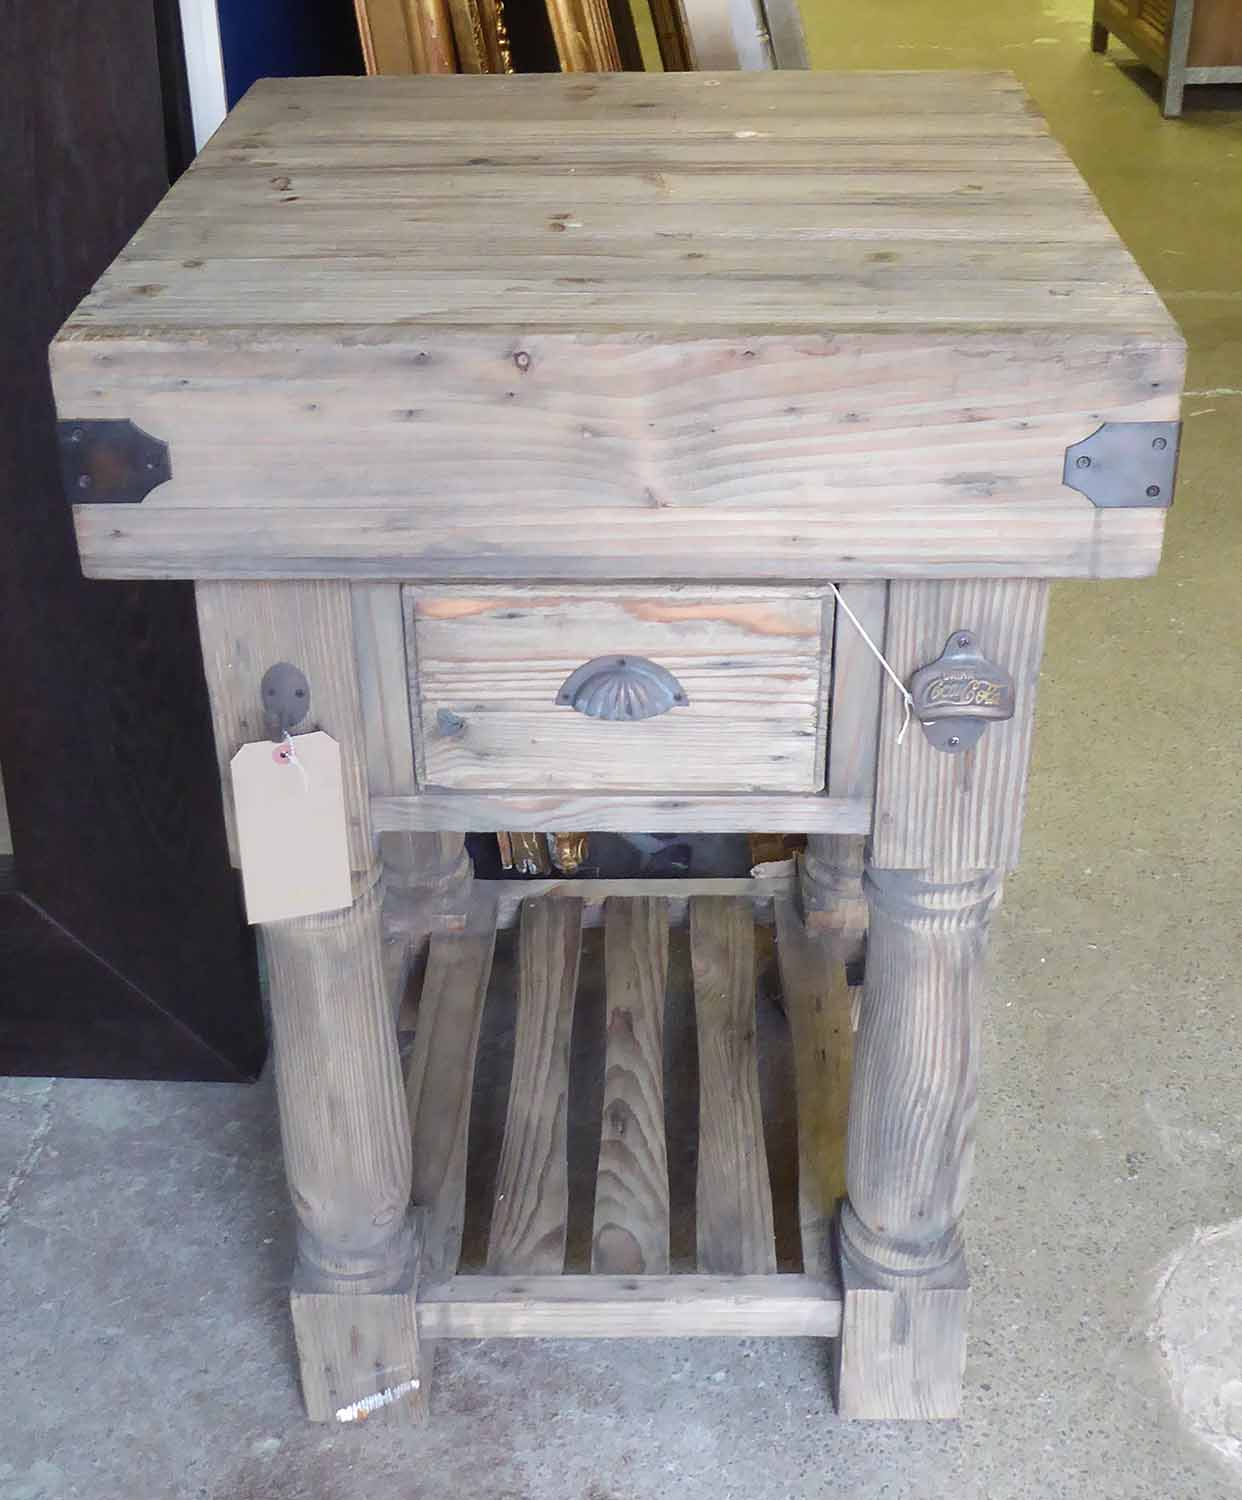 Lot 697 - BUTCHERS BLOCK, vintage inspired design, pine and metal bound with drawer, 60cm x 60cm x 90cm H.